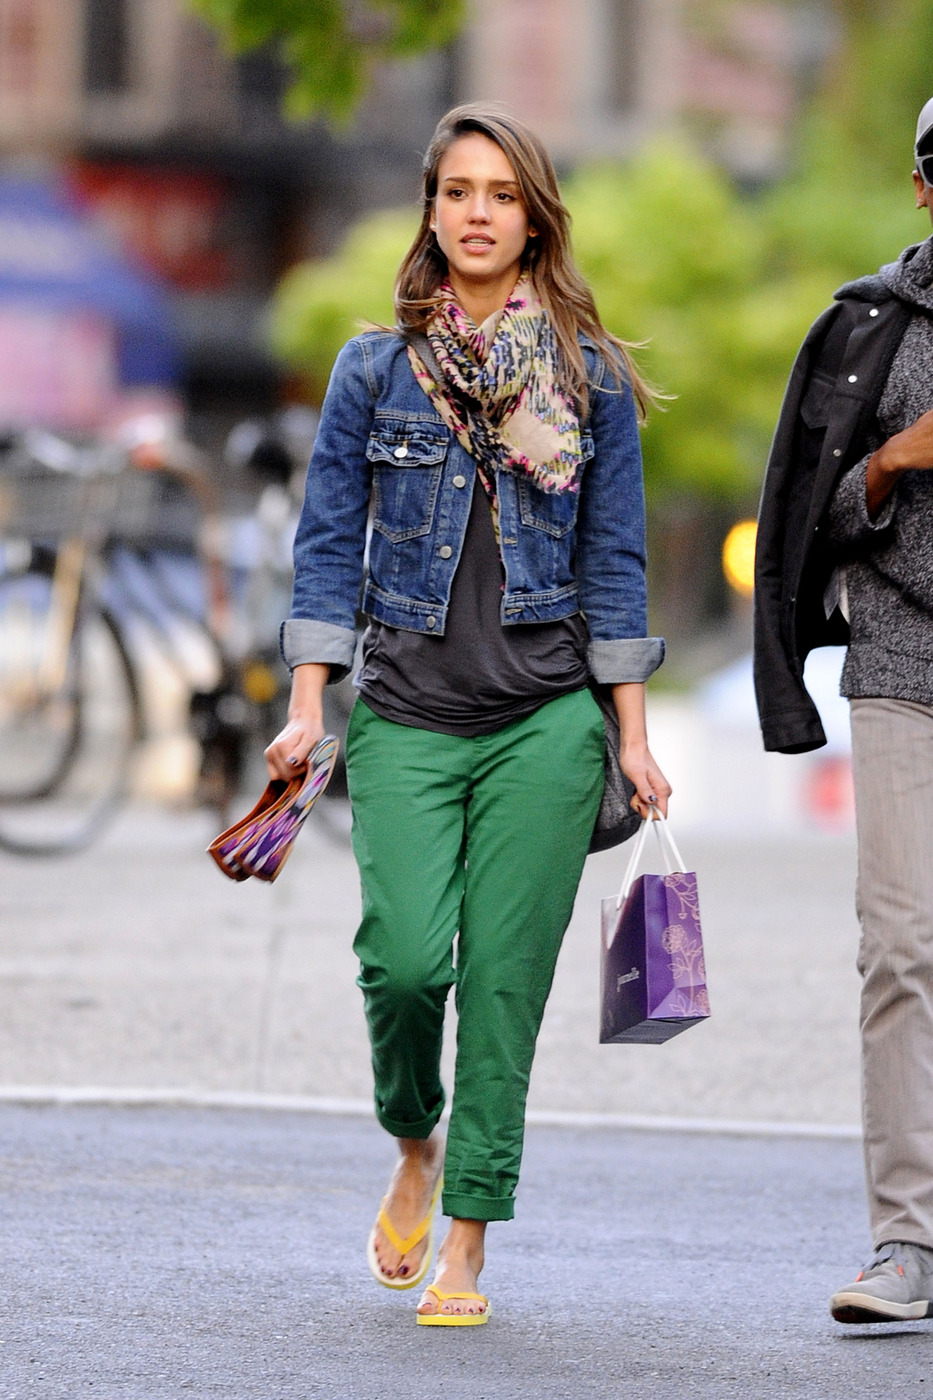 Jessica Alba does some shopping with a friend in New York City